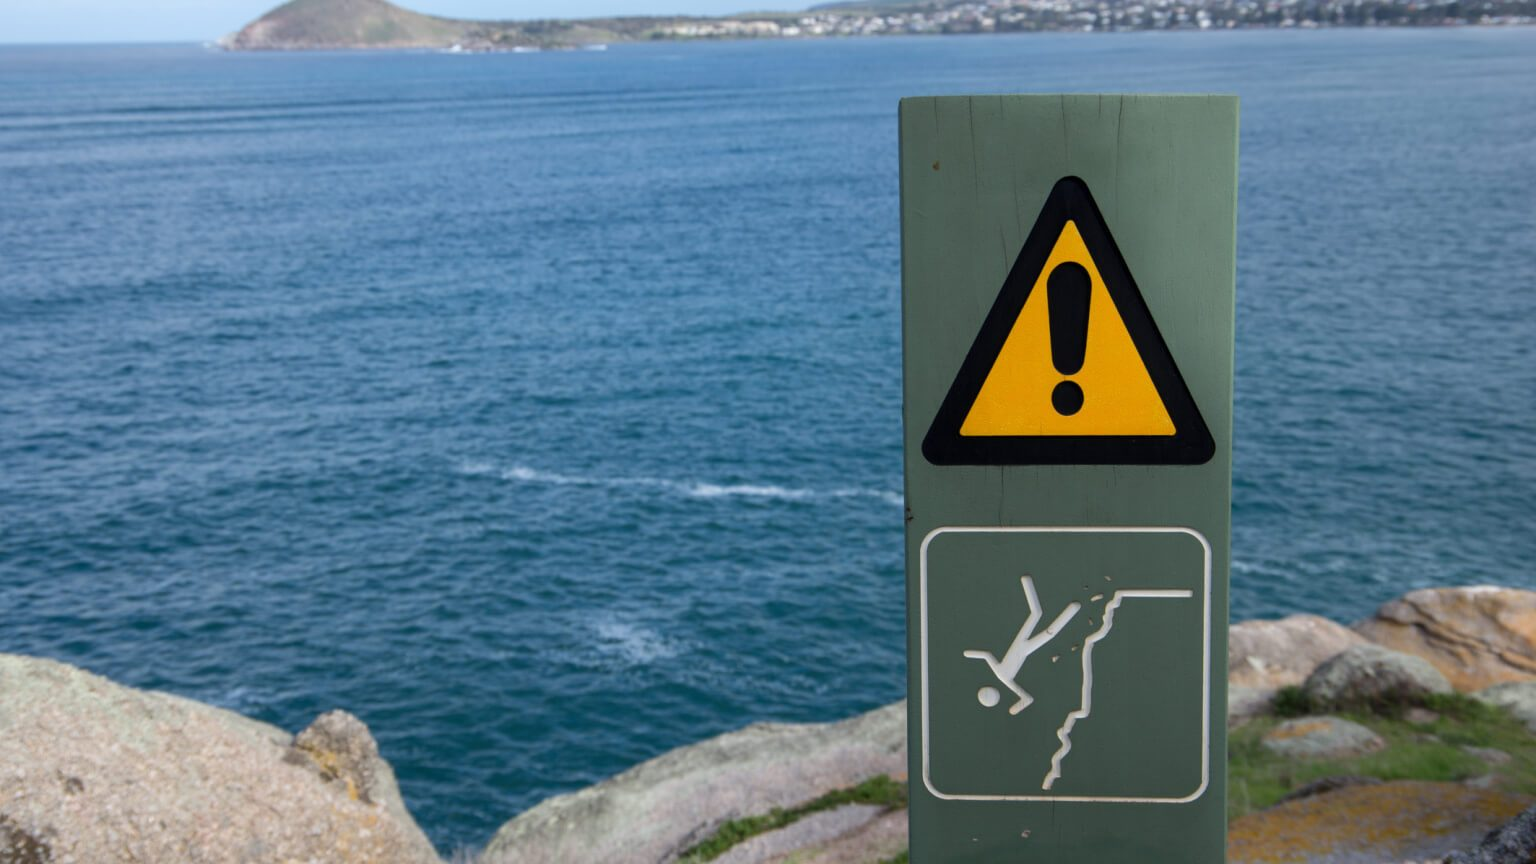 Caution sign with a drawing of a person falling of a cliff below